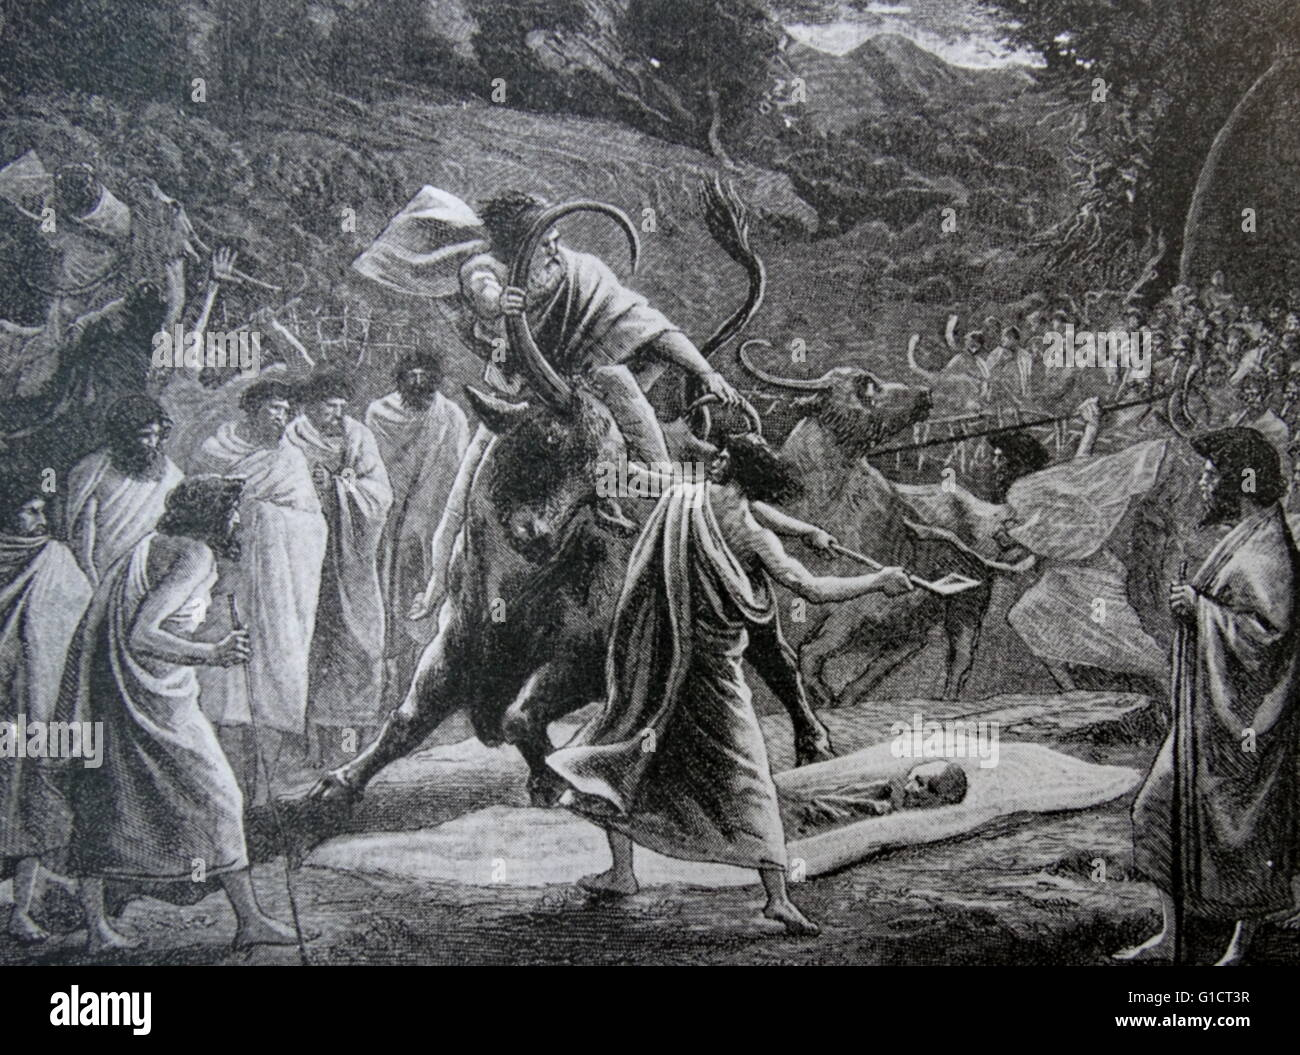 Engraving depicting the Funeral Sacrifice of the Todas in Southern India - Stock Image